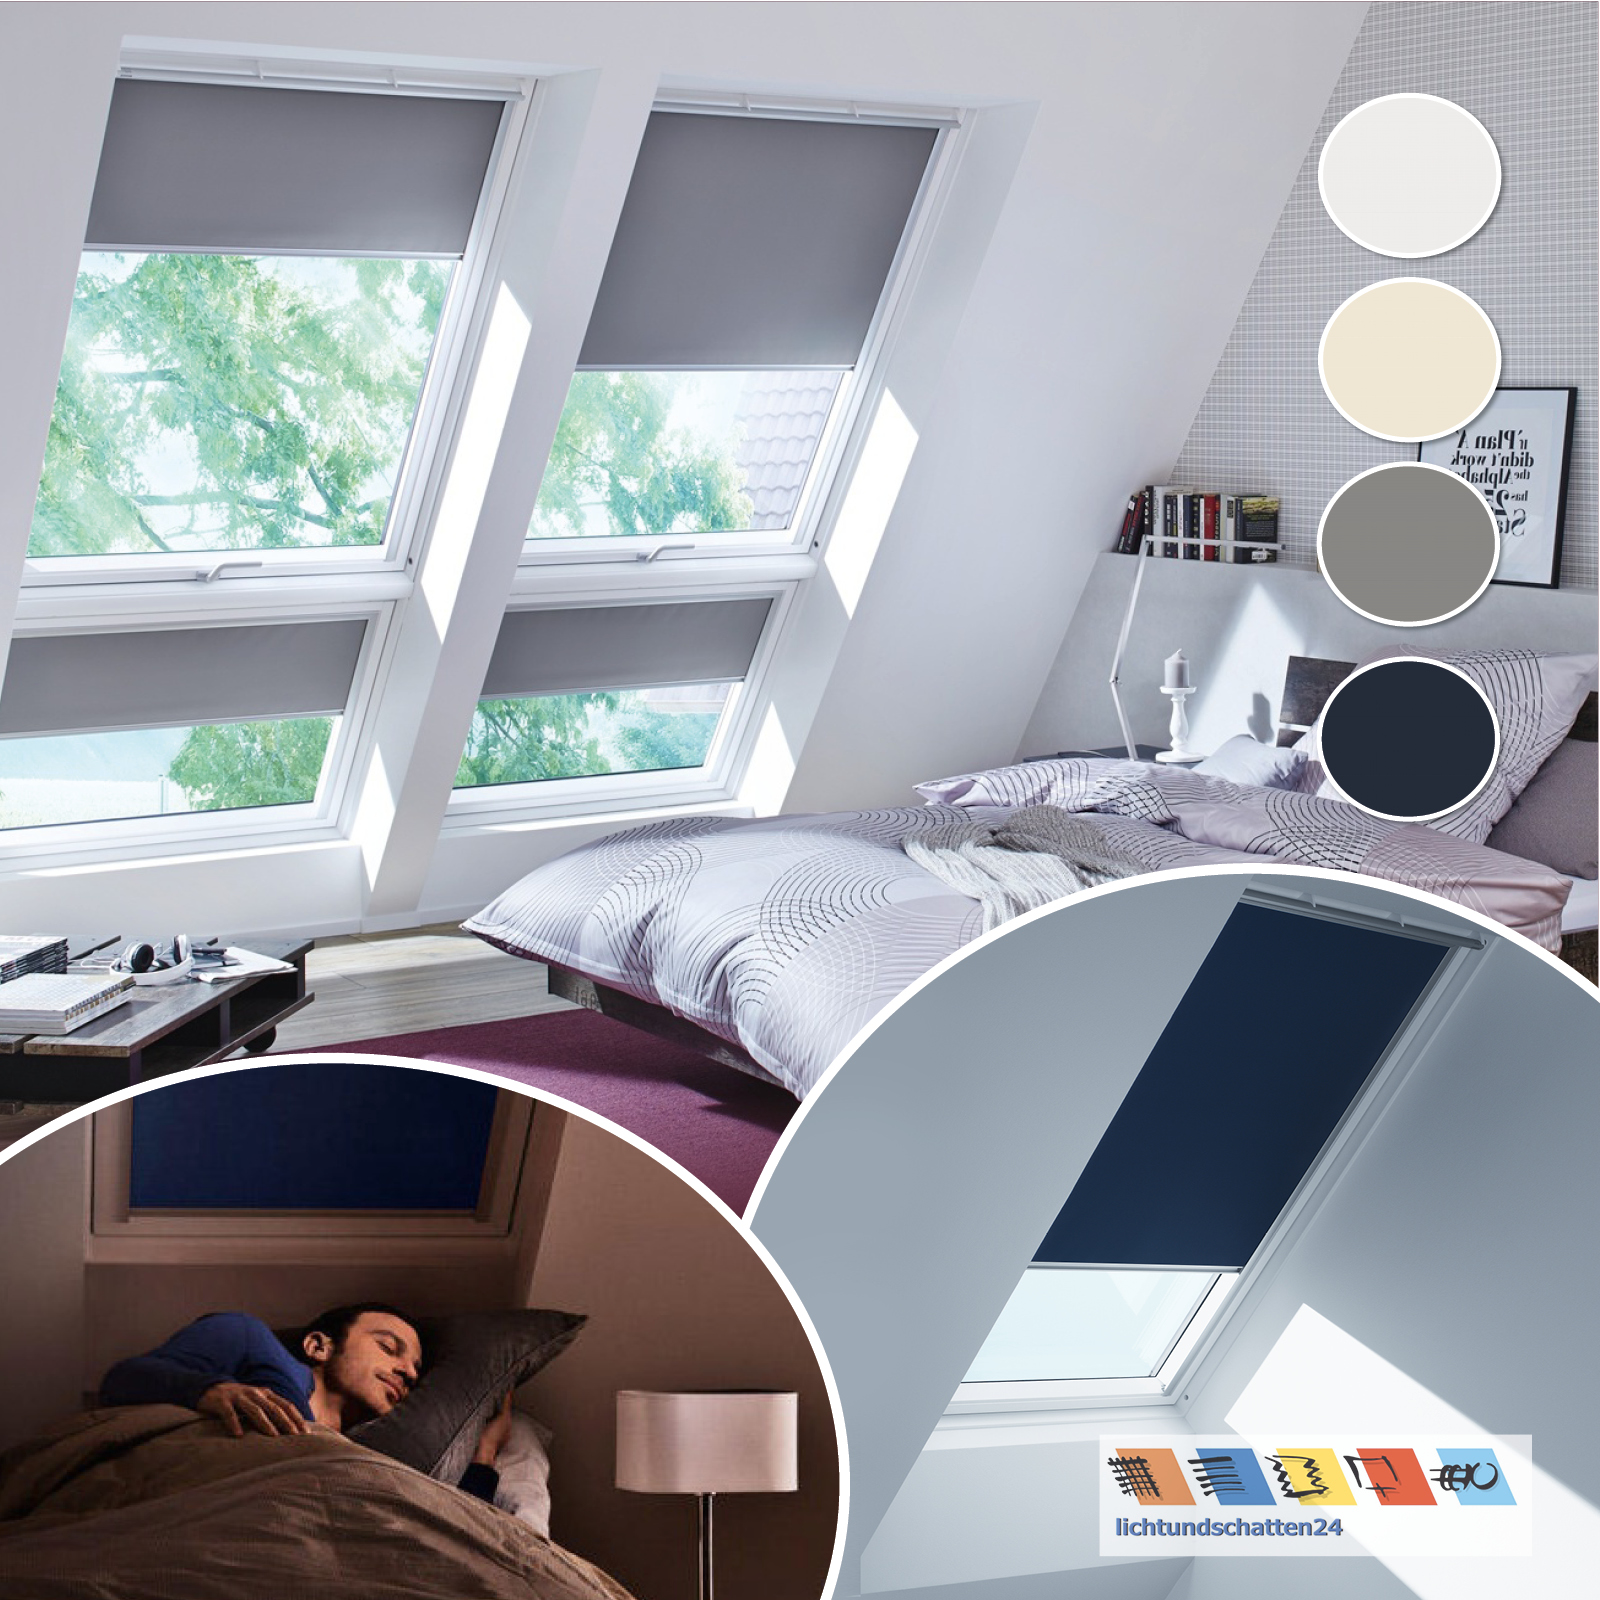 velux rollo dachfenster latest velux dachfenster roto zubehr roto zubehr velux rolladen roto. Black Bedroom Furniture Sets. Home Design Ideas